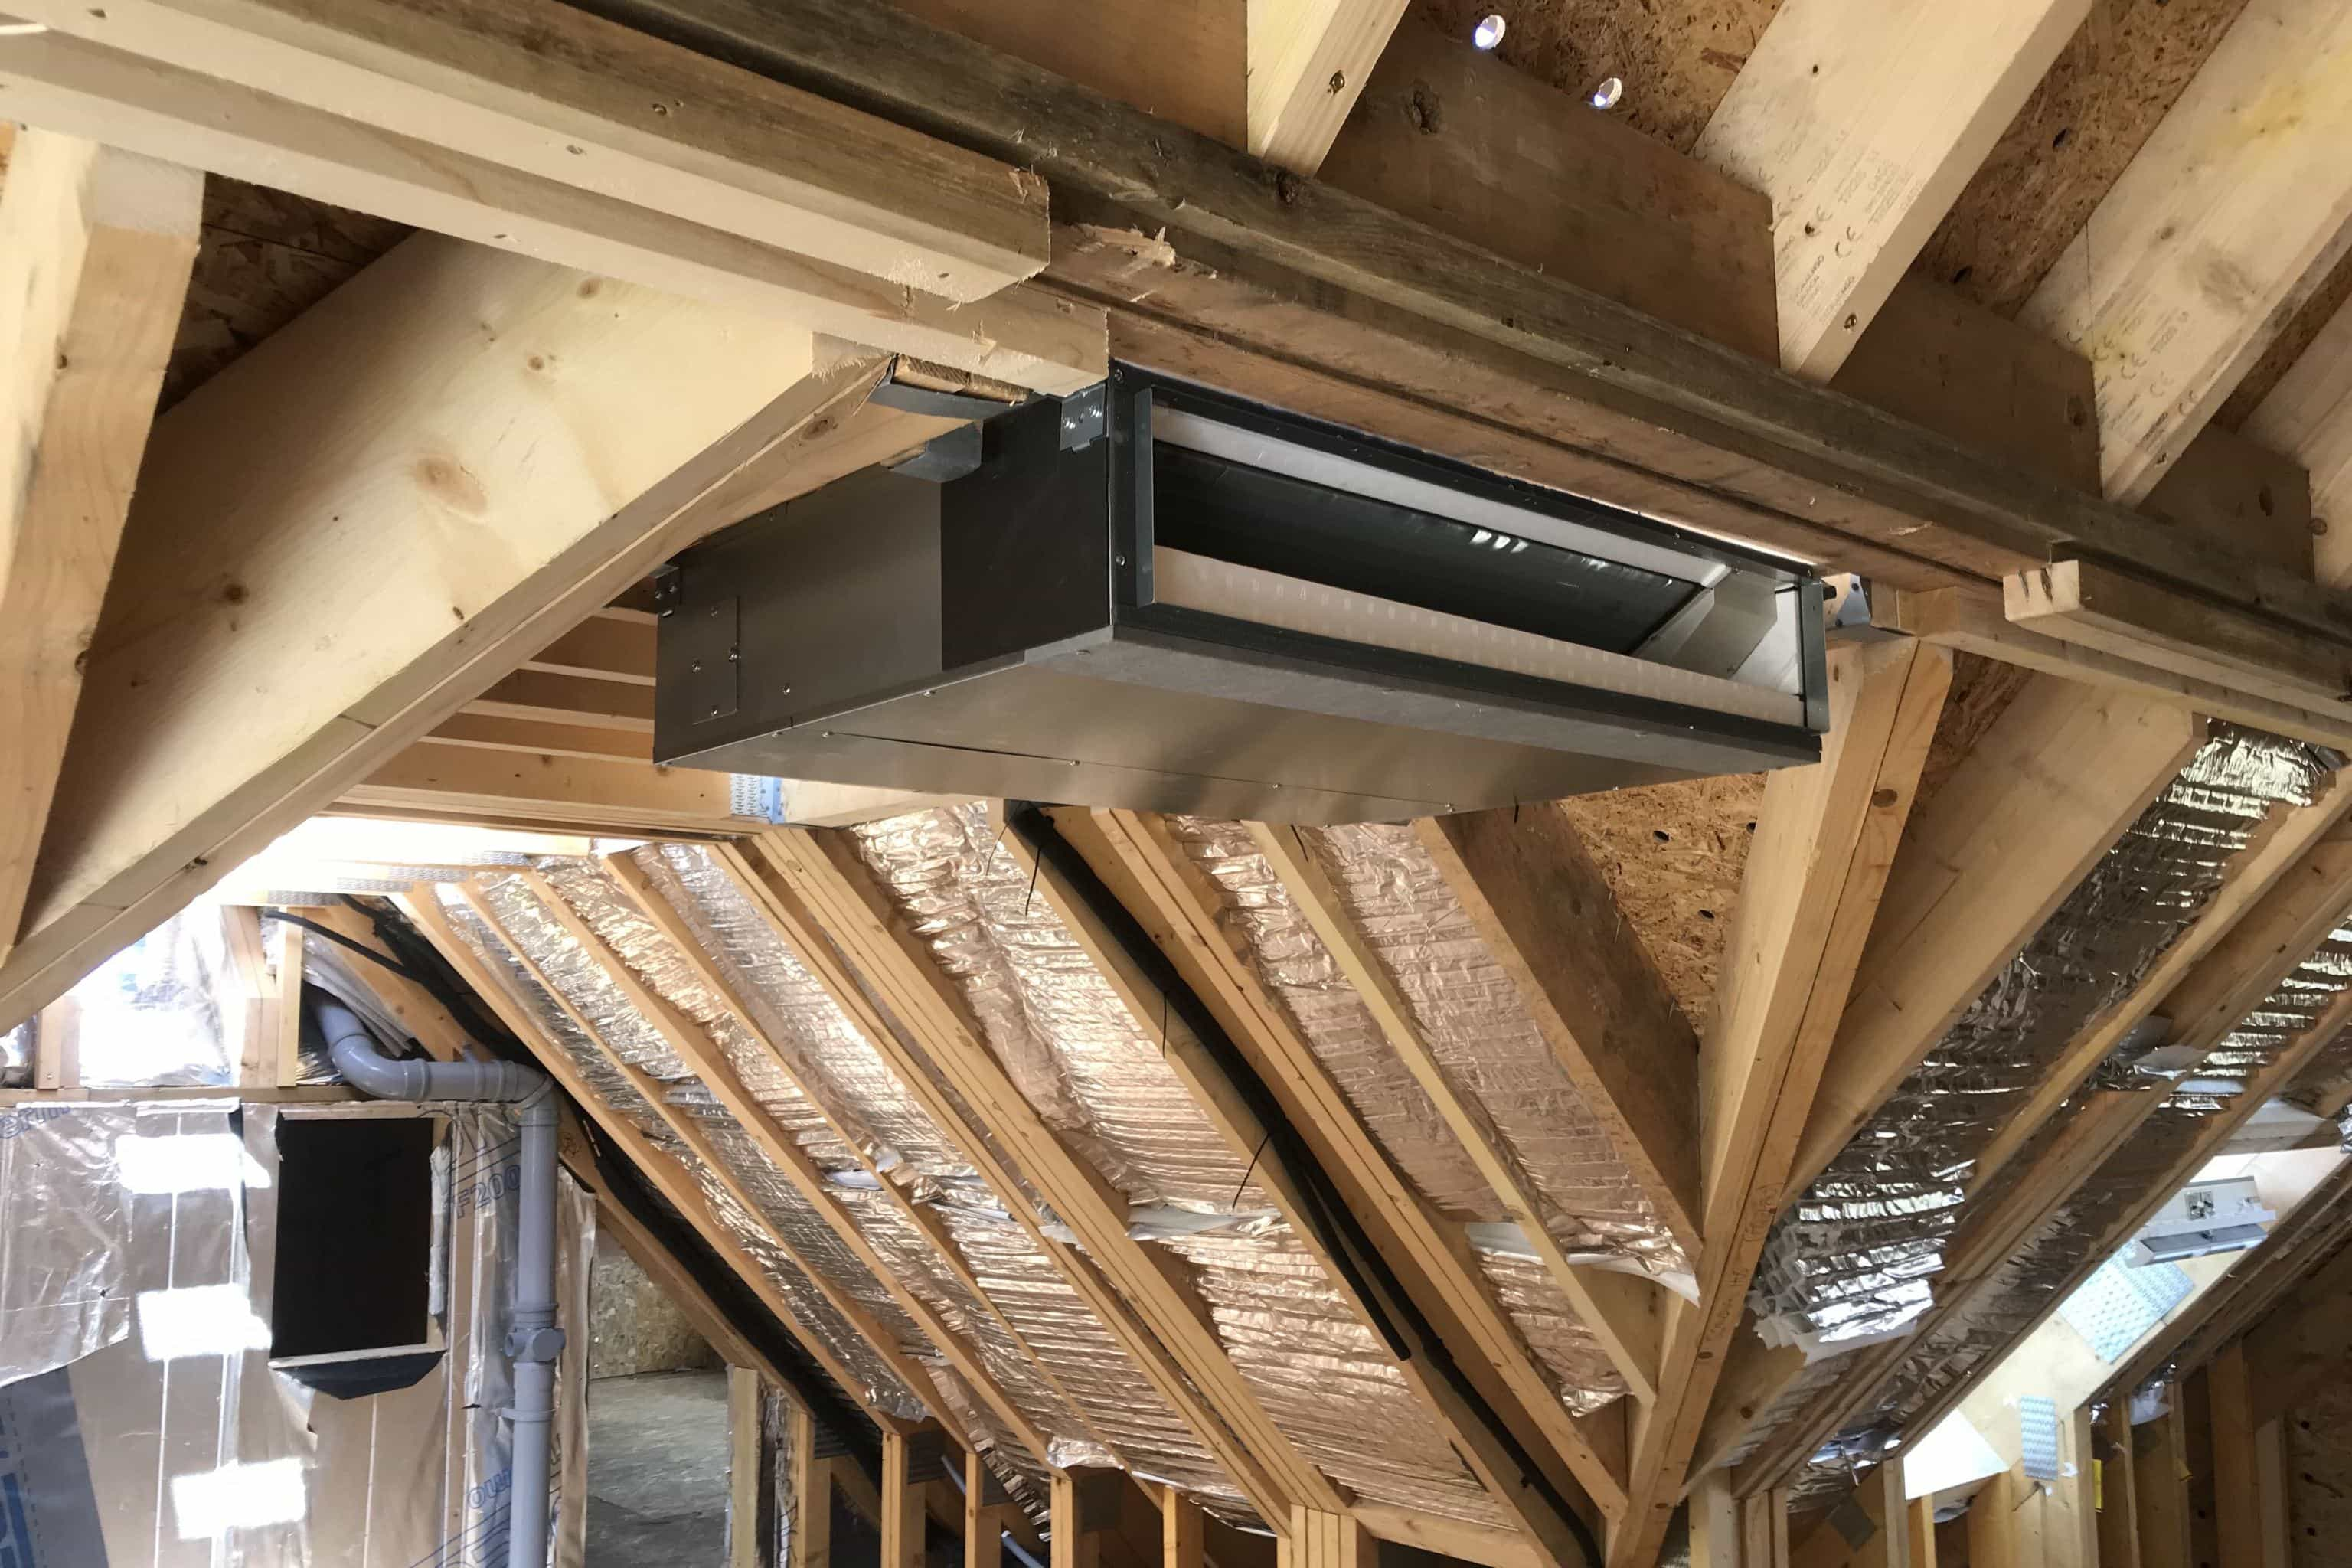 Ducted ceiling domestic air conditioning unit in new build in Ringwood, Crawley Down still in building stages